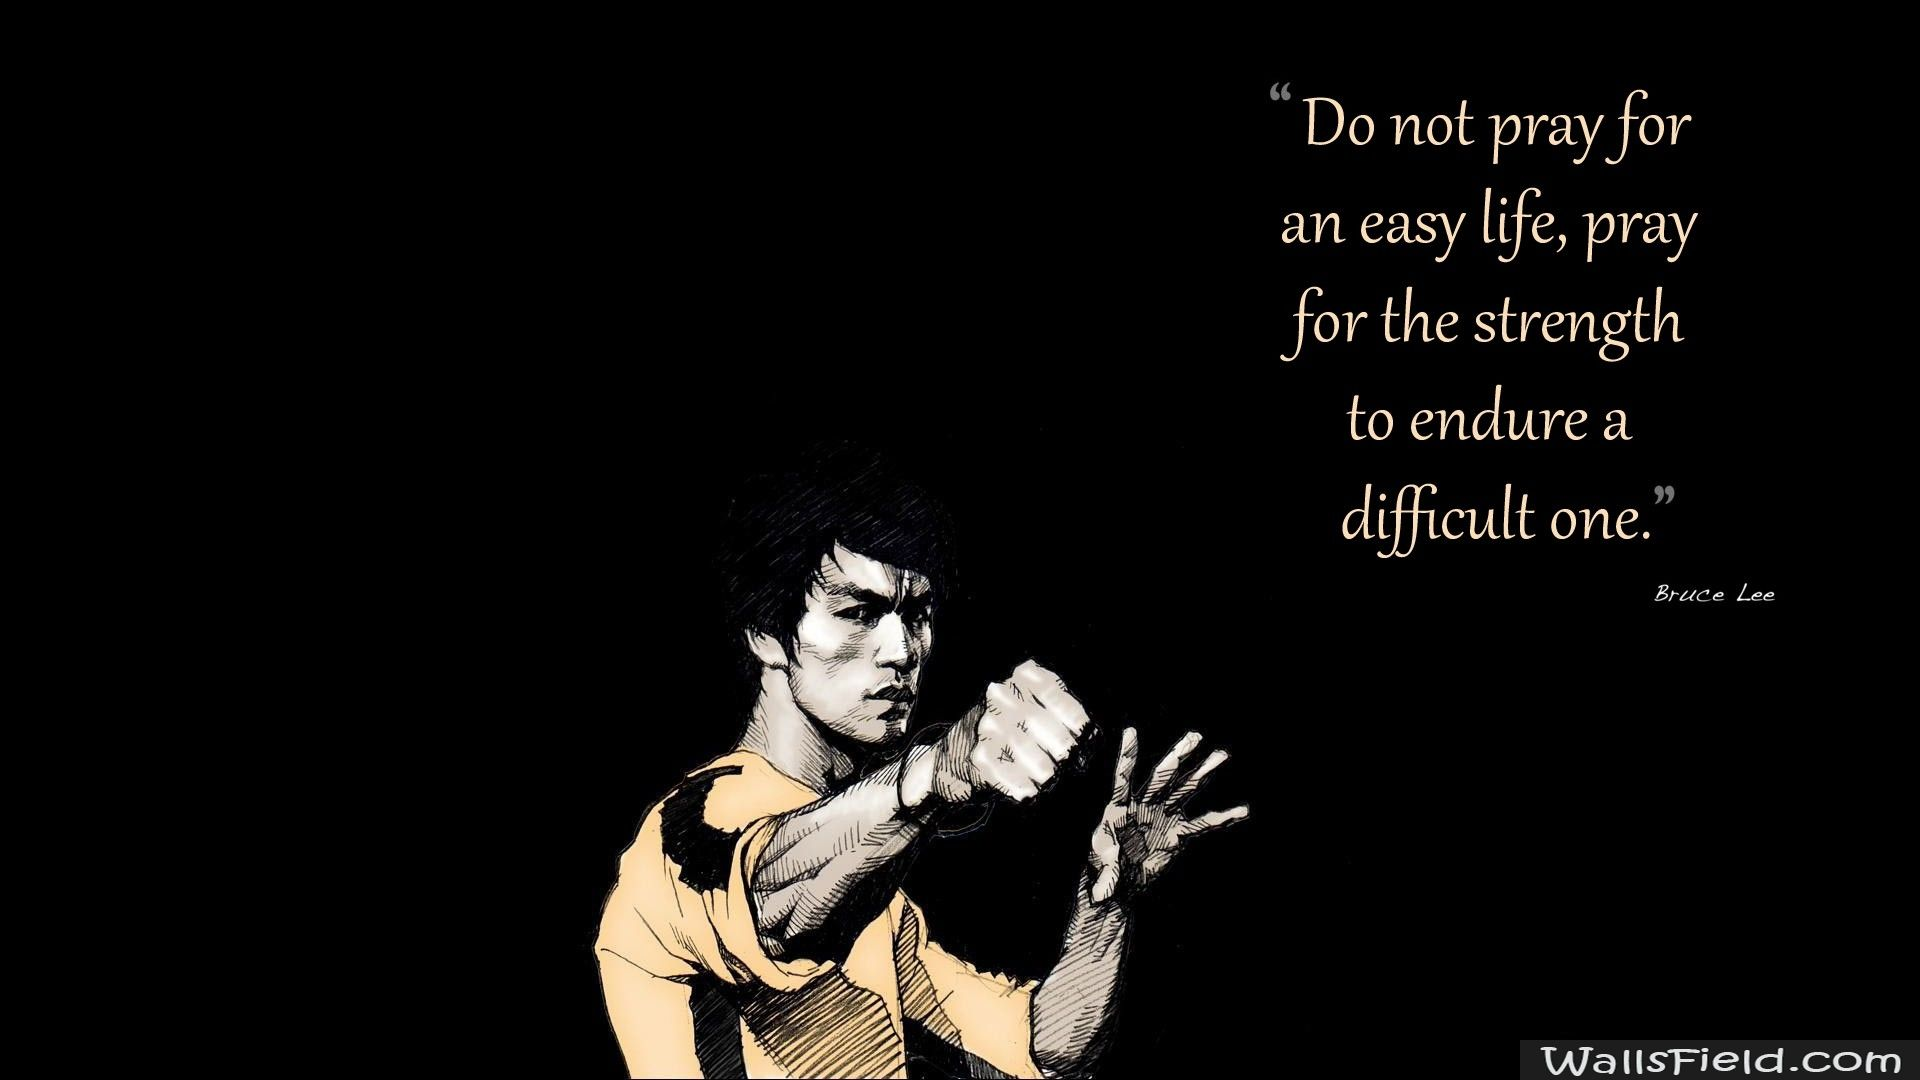 Bruce Lee Quote - http://wallsfield.com/bruce-lee-quote-hd ...